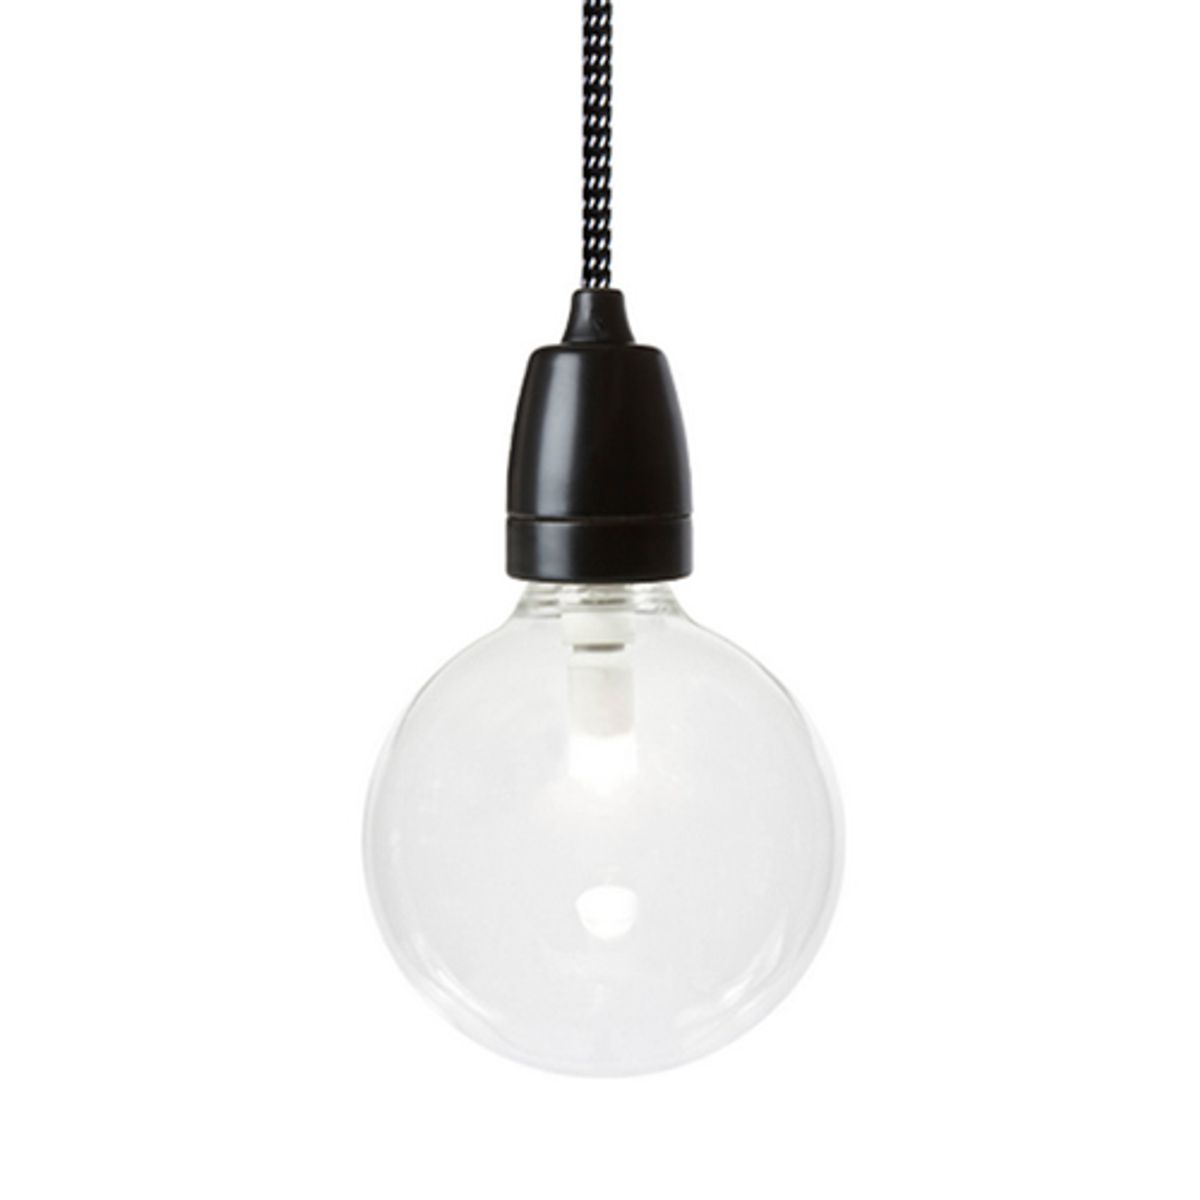 Suspension en porcelaine noire Nud Collection